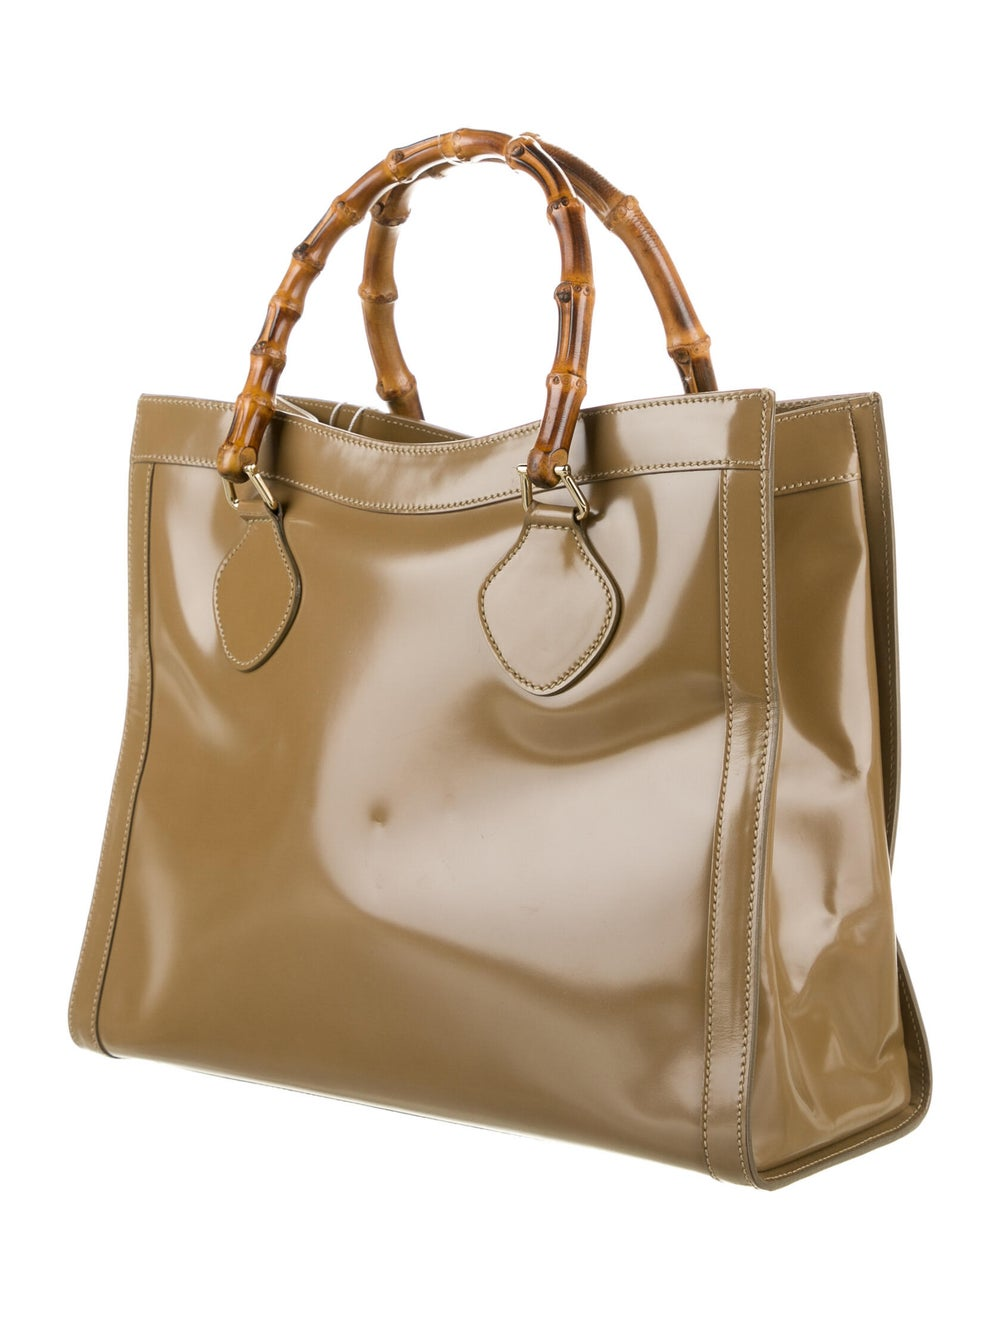 Gucci Vintage Leather Bamboo Diana Tote Brown - image 3